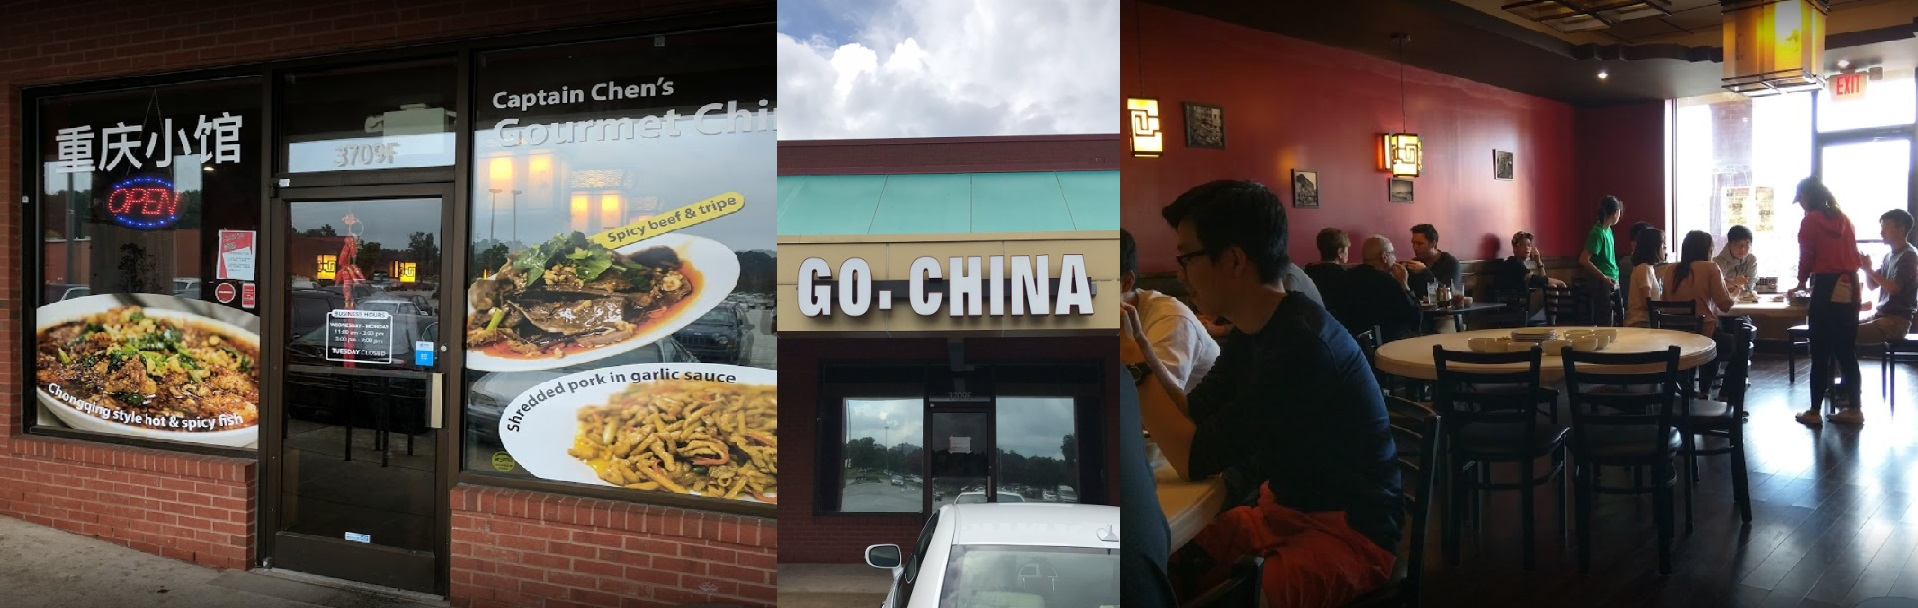 Your Favorite Chinese Food Atgourmet China